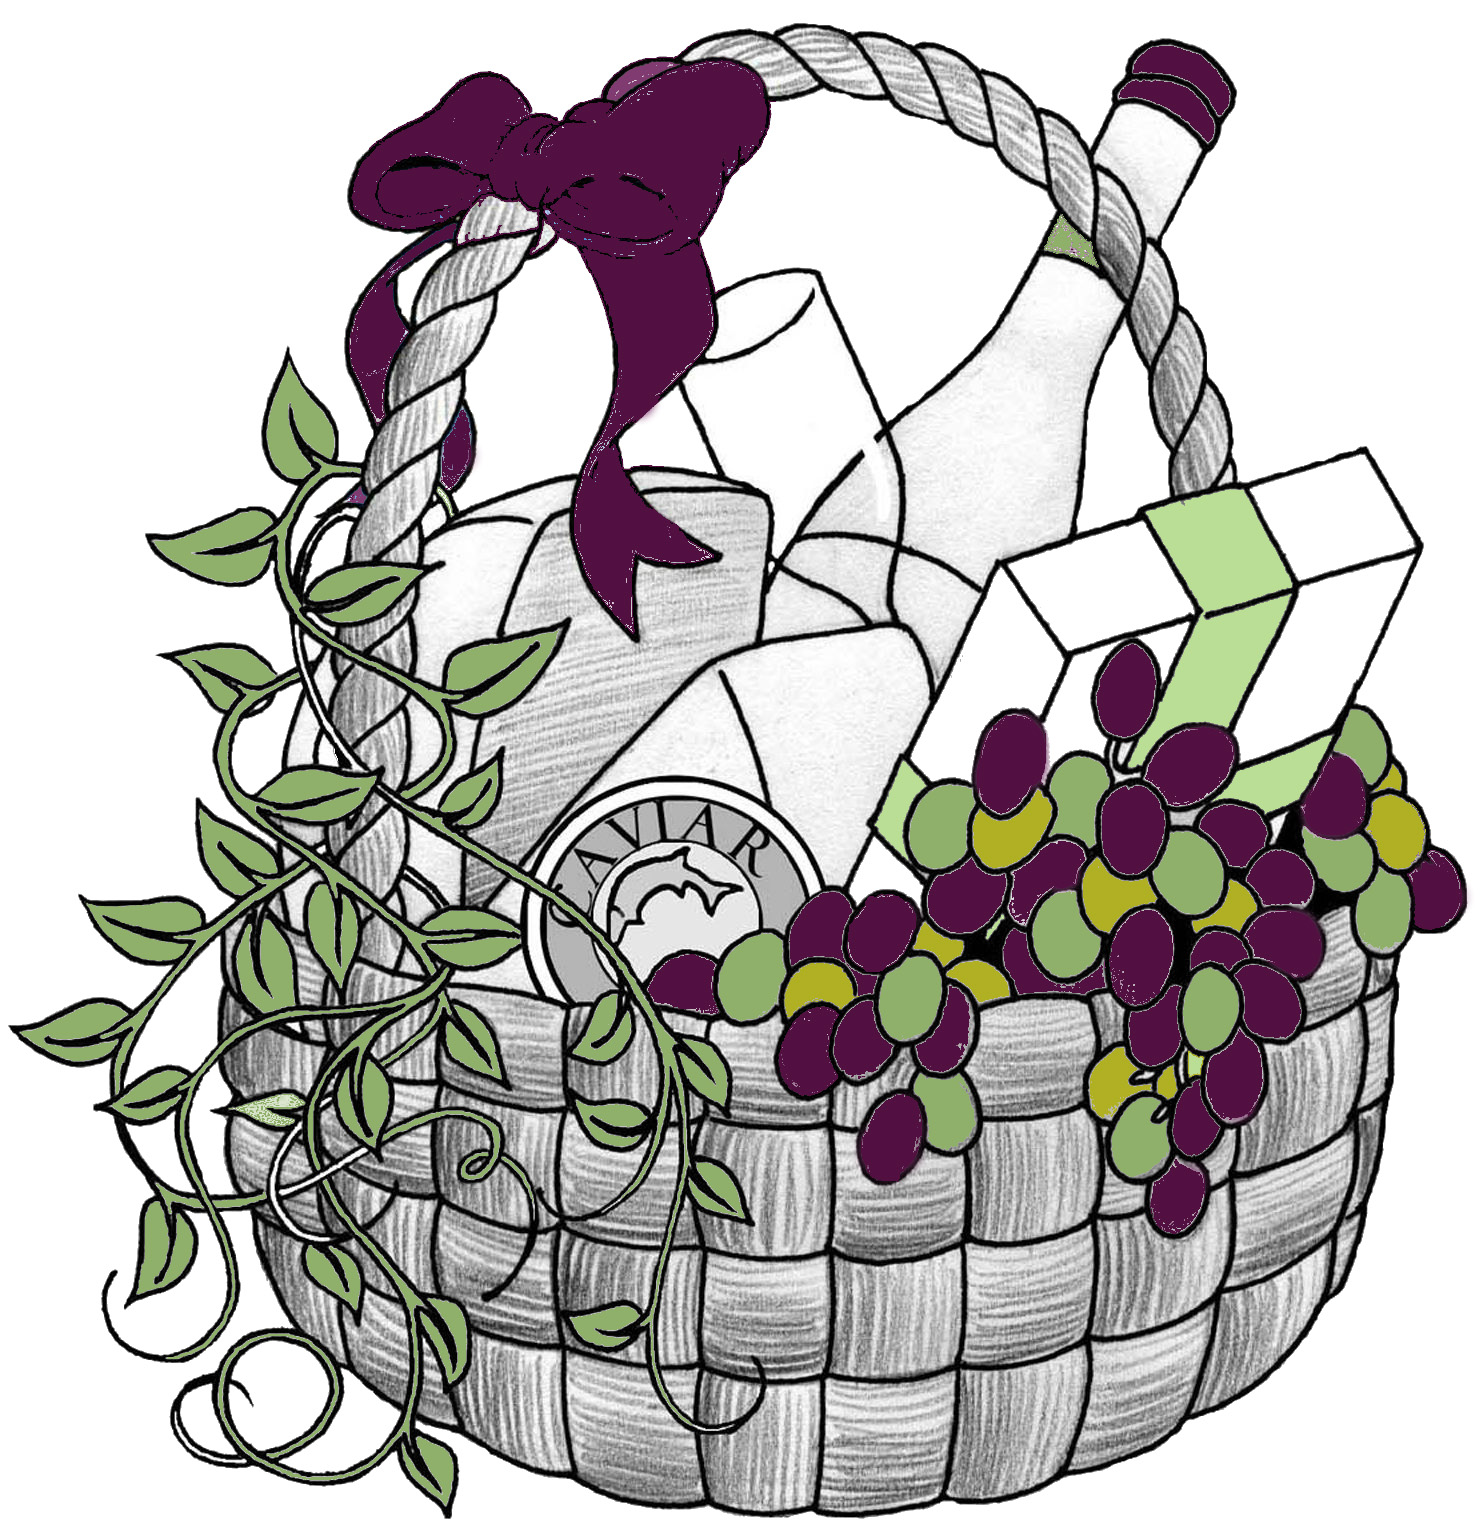 Gift basket png for baskets clipart free clip art images niskayuna gift basket png for baskets clipart free clip art images niskayuna reformed church negle Choice Image